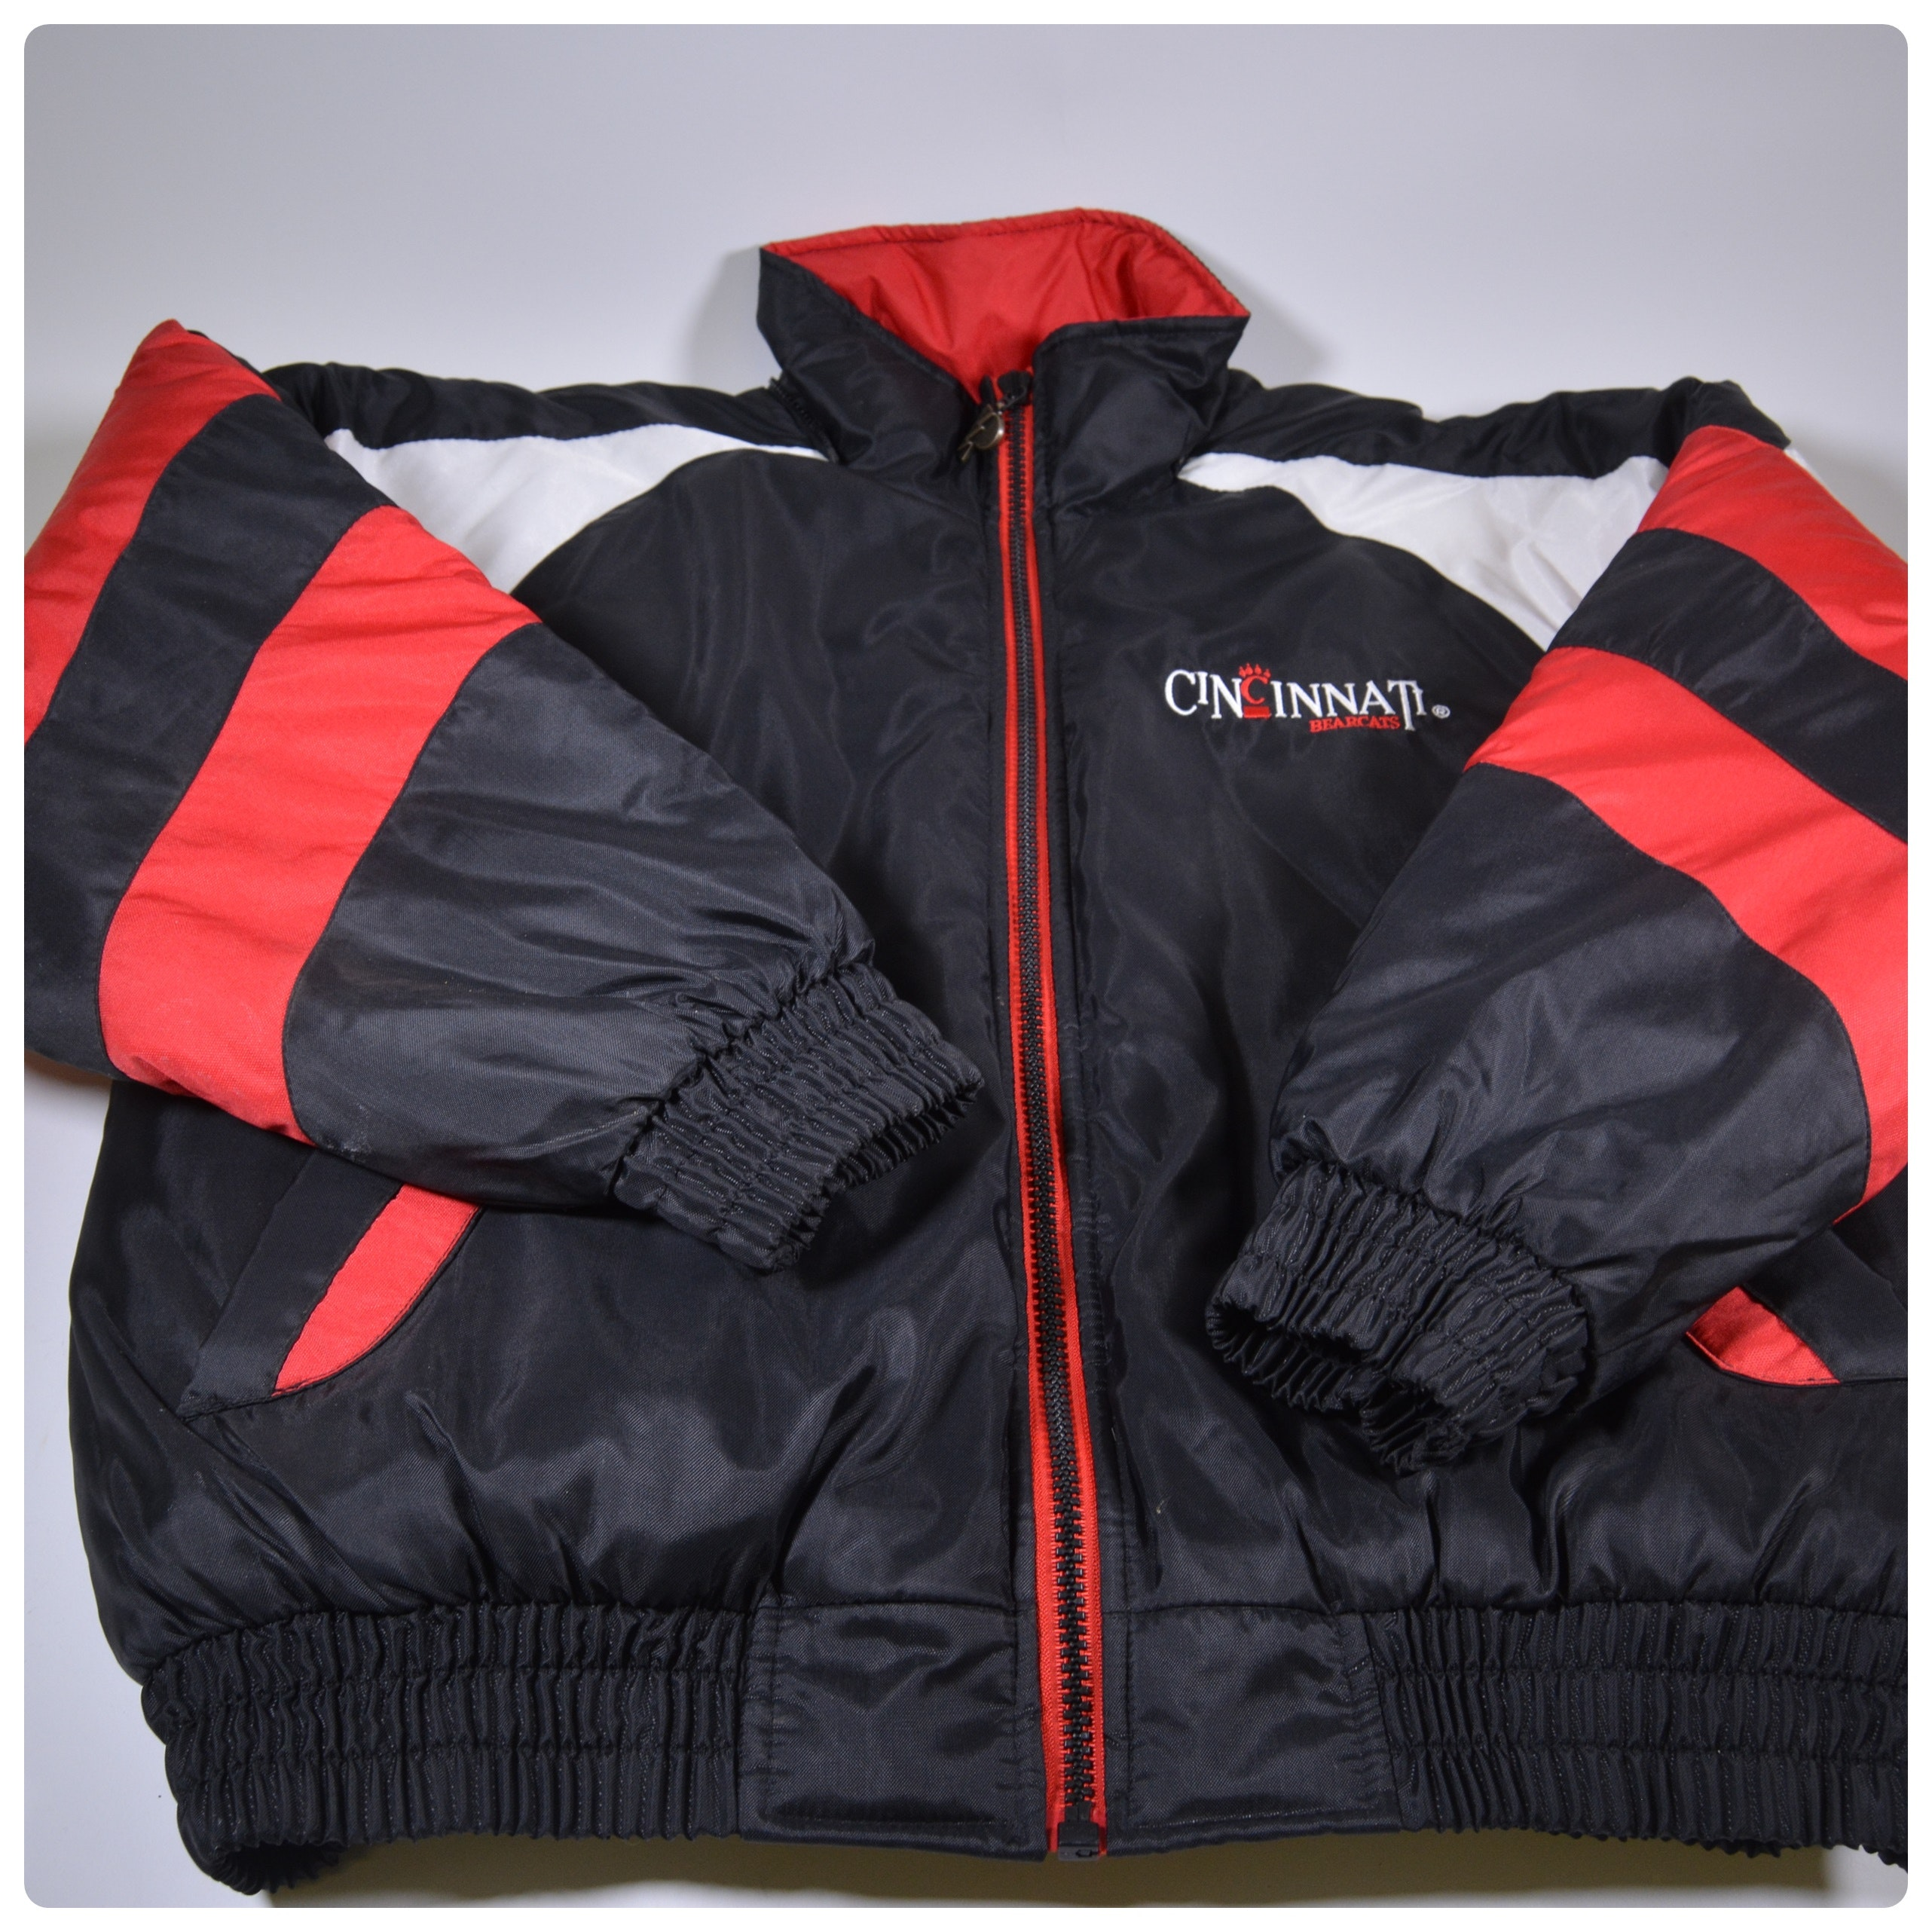 University of Cincinnati Bearcats Pro Player Jacket